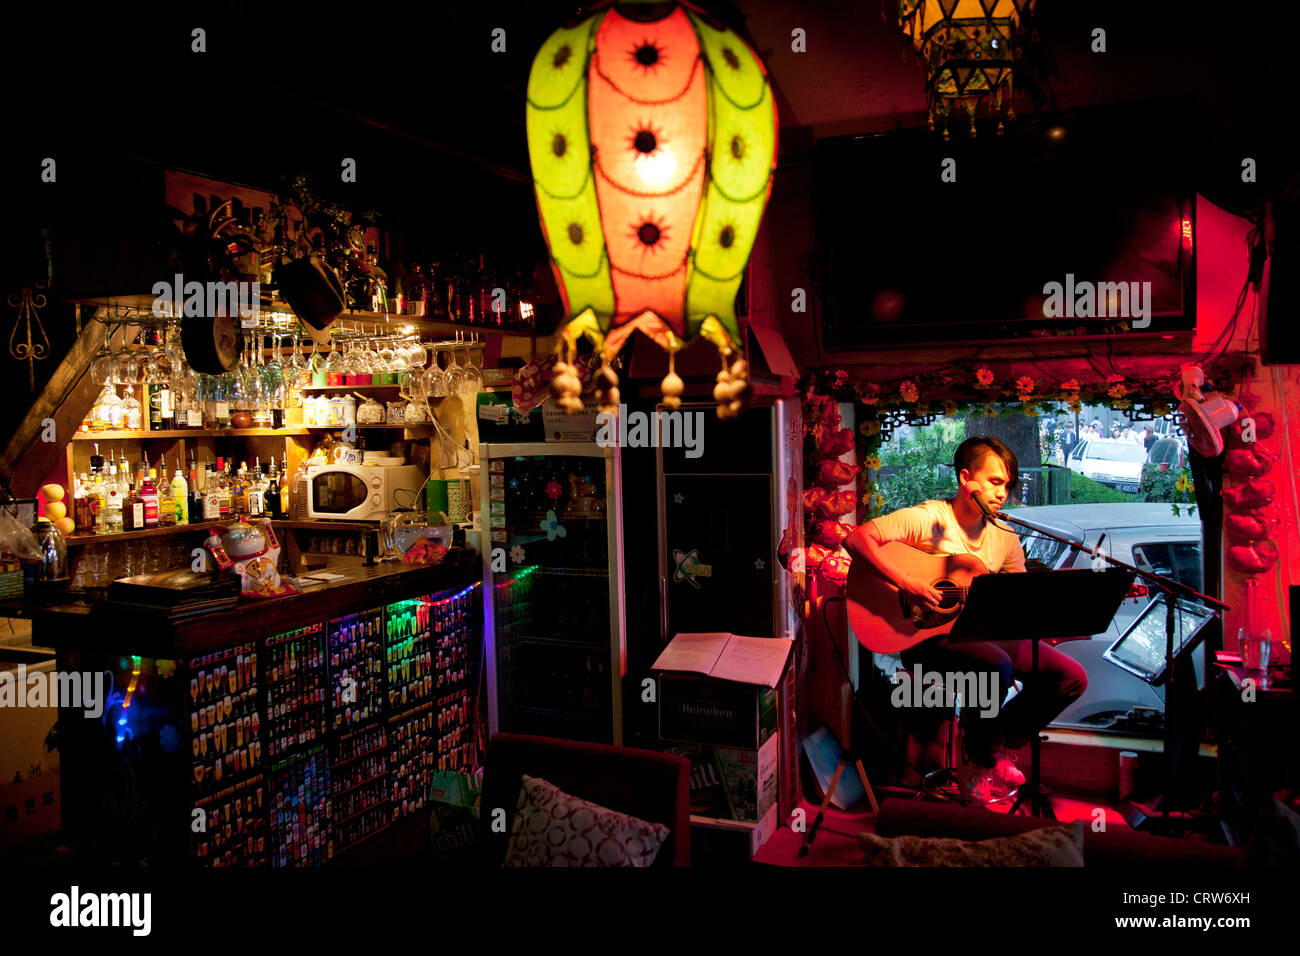 Singer performs at a bar in Shichahai, aka Houhai, Beijing's newly developed nightlife area, full of small bars. - Stock Image